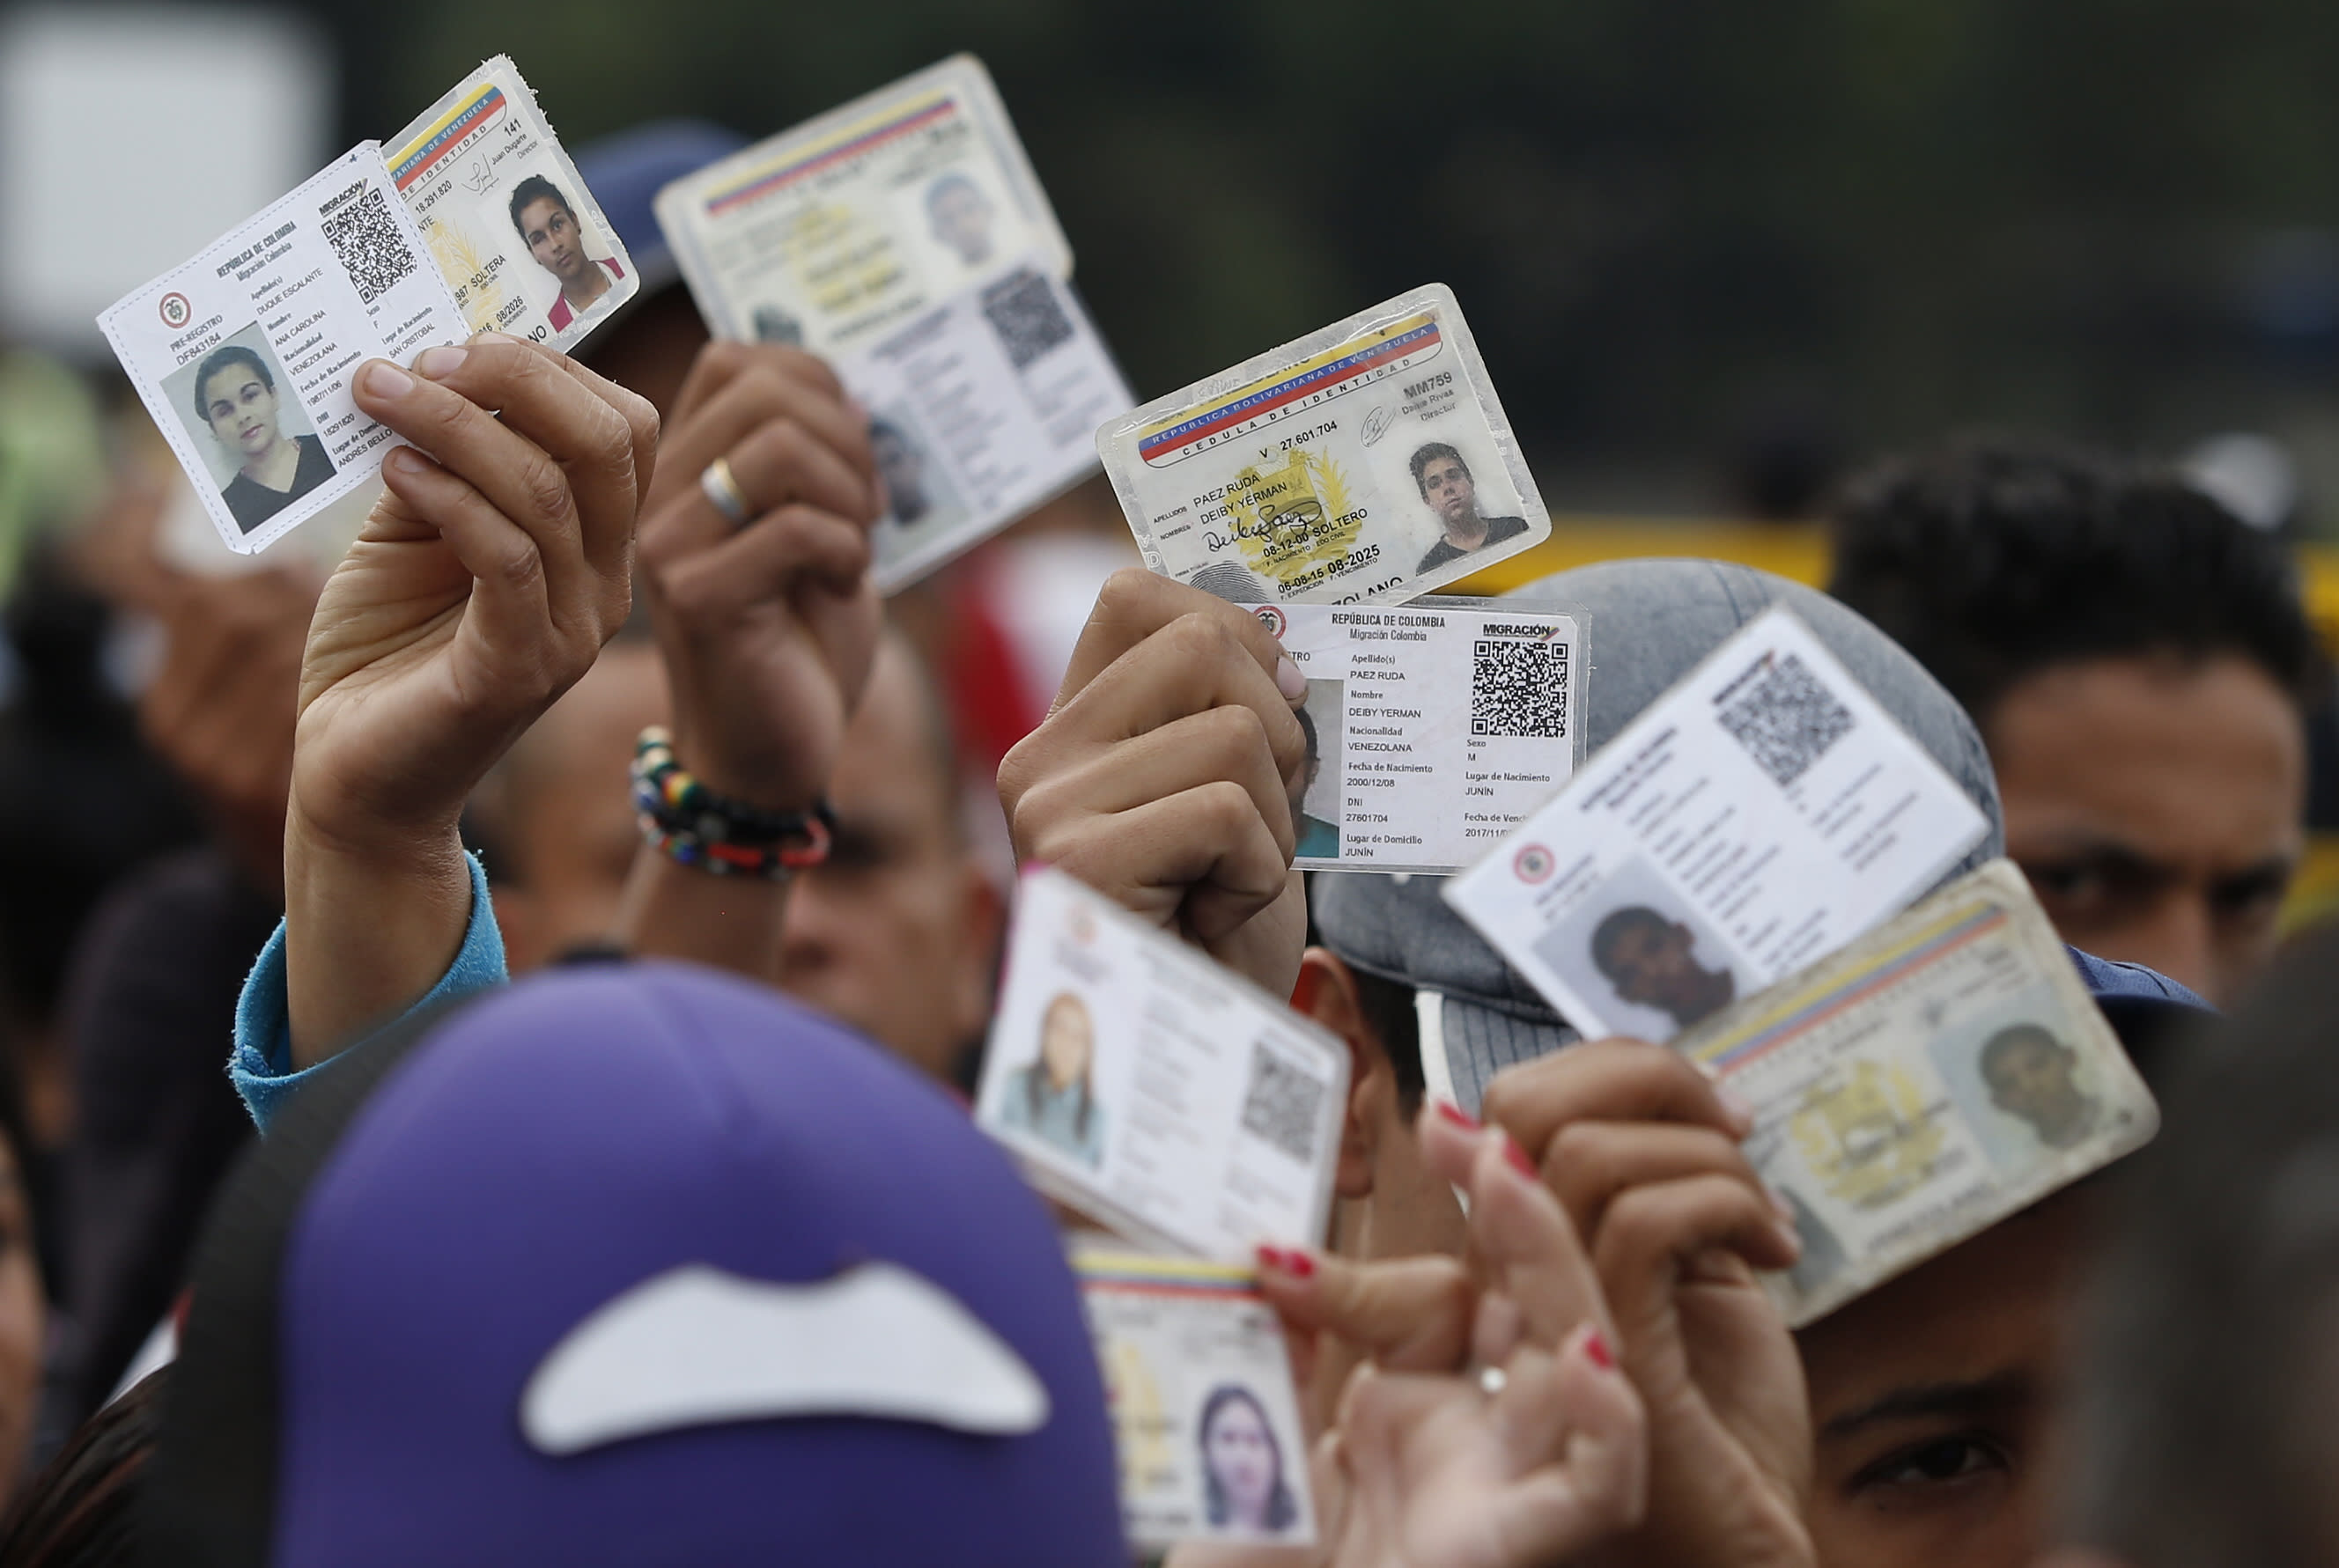 <p>Venezuelan citizens hold up their identification cards for inspection by the Colombian immigration police, in Cucuta, Colombia, on the border with Venezuela on Feb. 22, 2018. (Photo: Fernando Vergara/AP) </p>